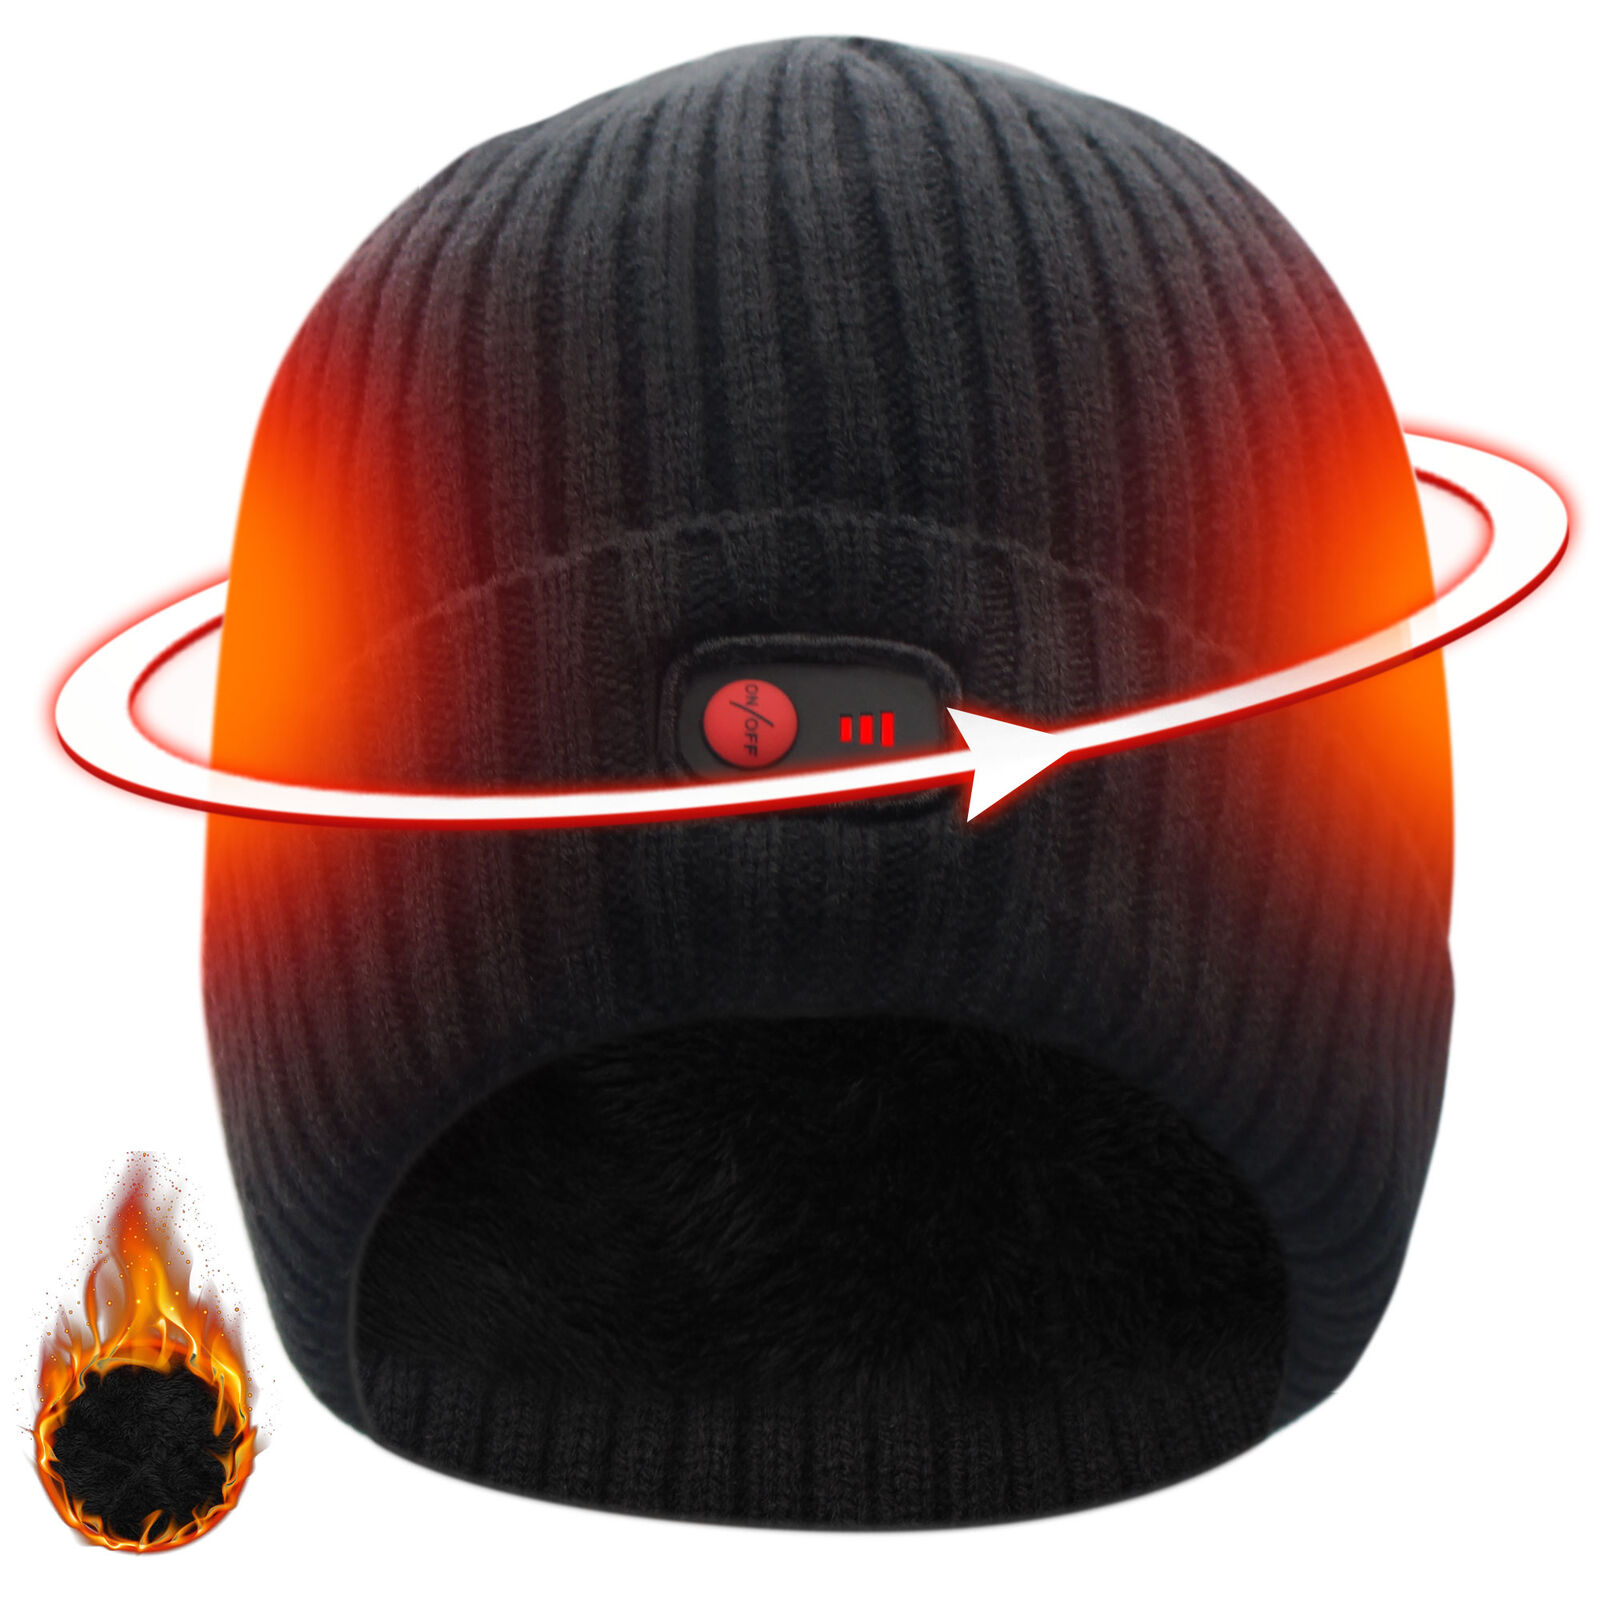 7.4V Battery Heated 3 levels control electric heating warm Hat  for cold Winter  outlet factory shop